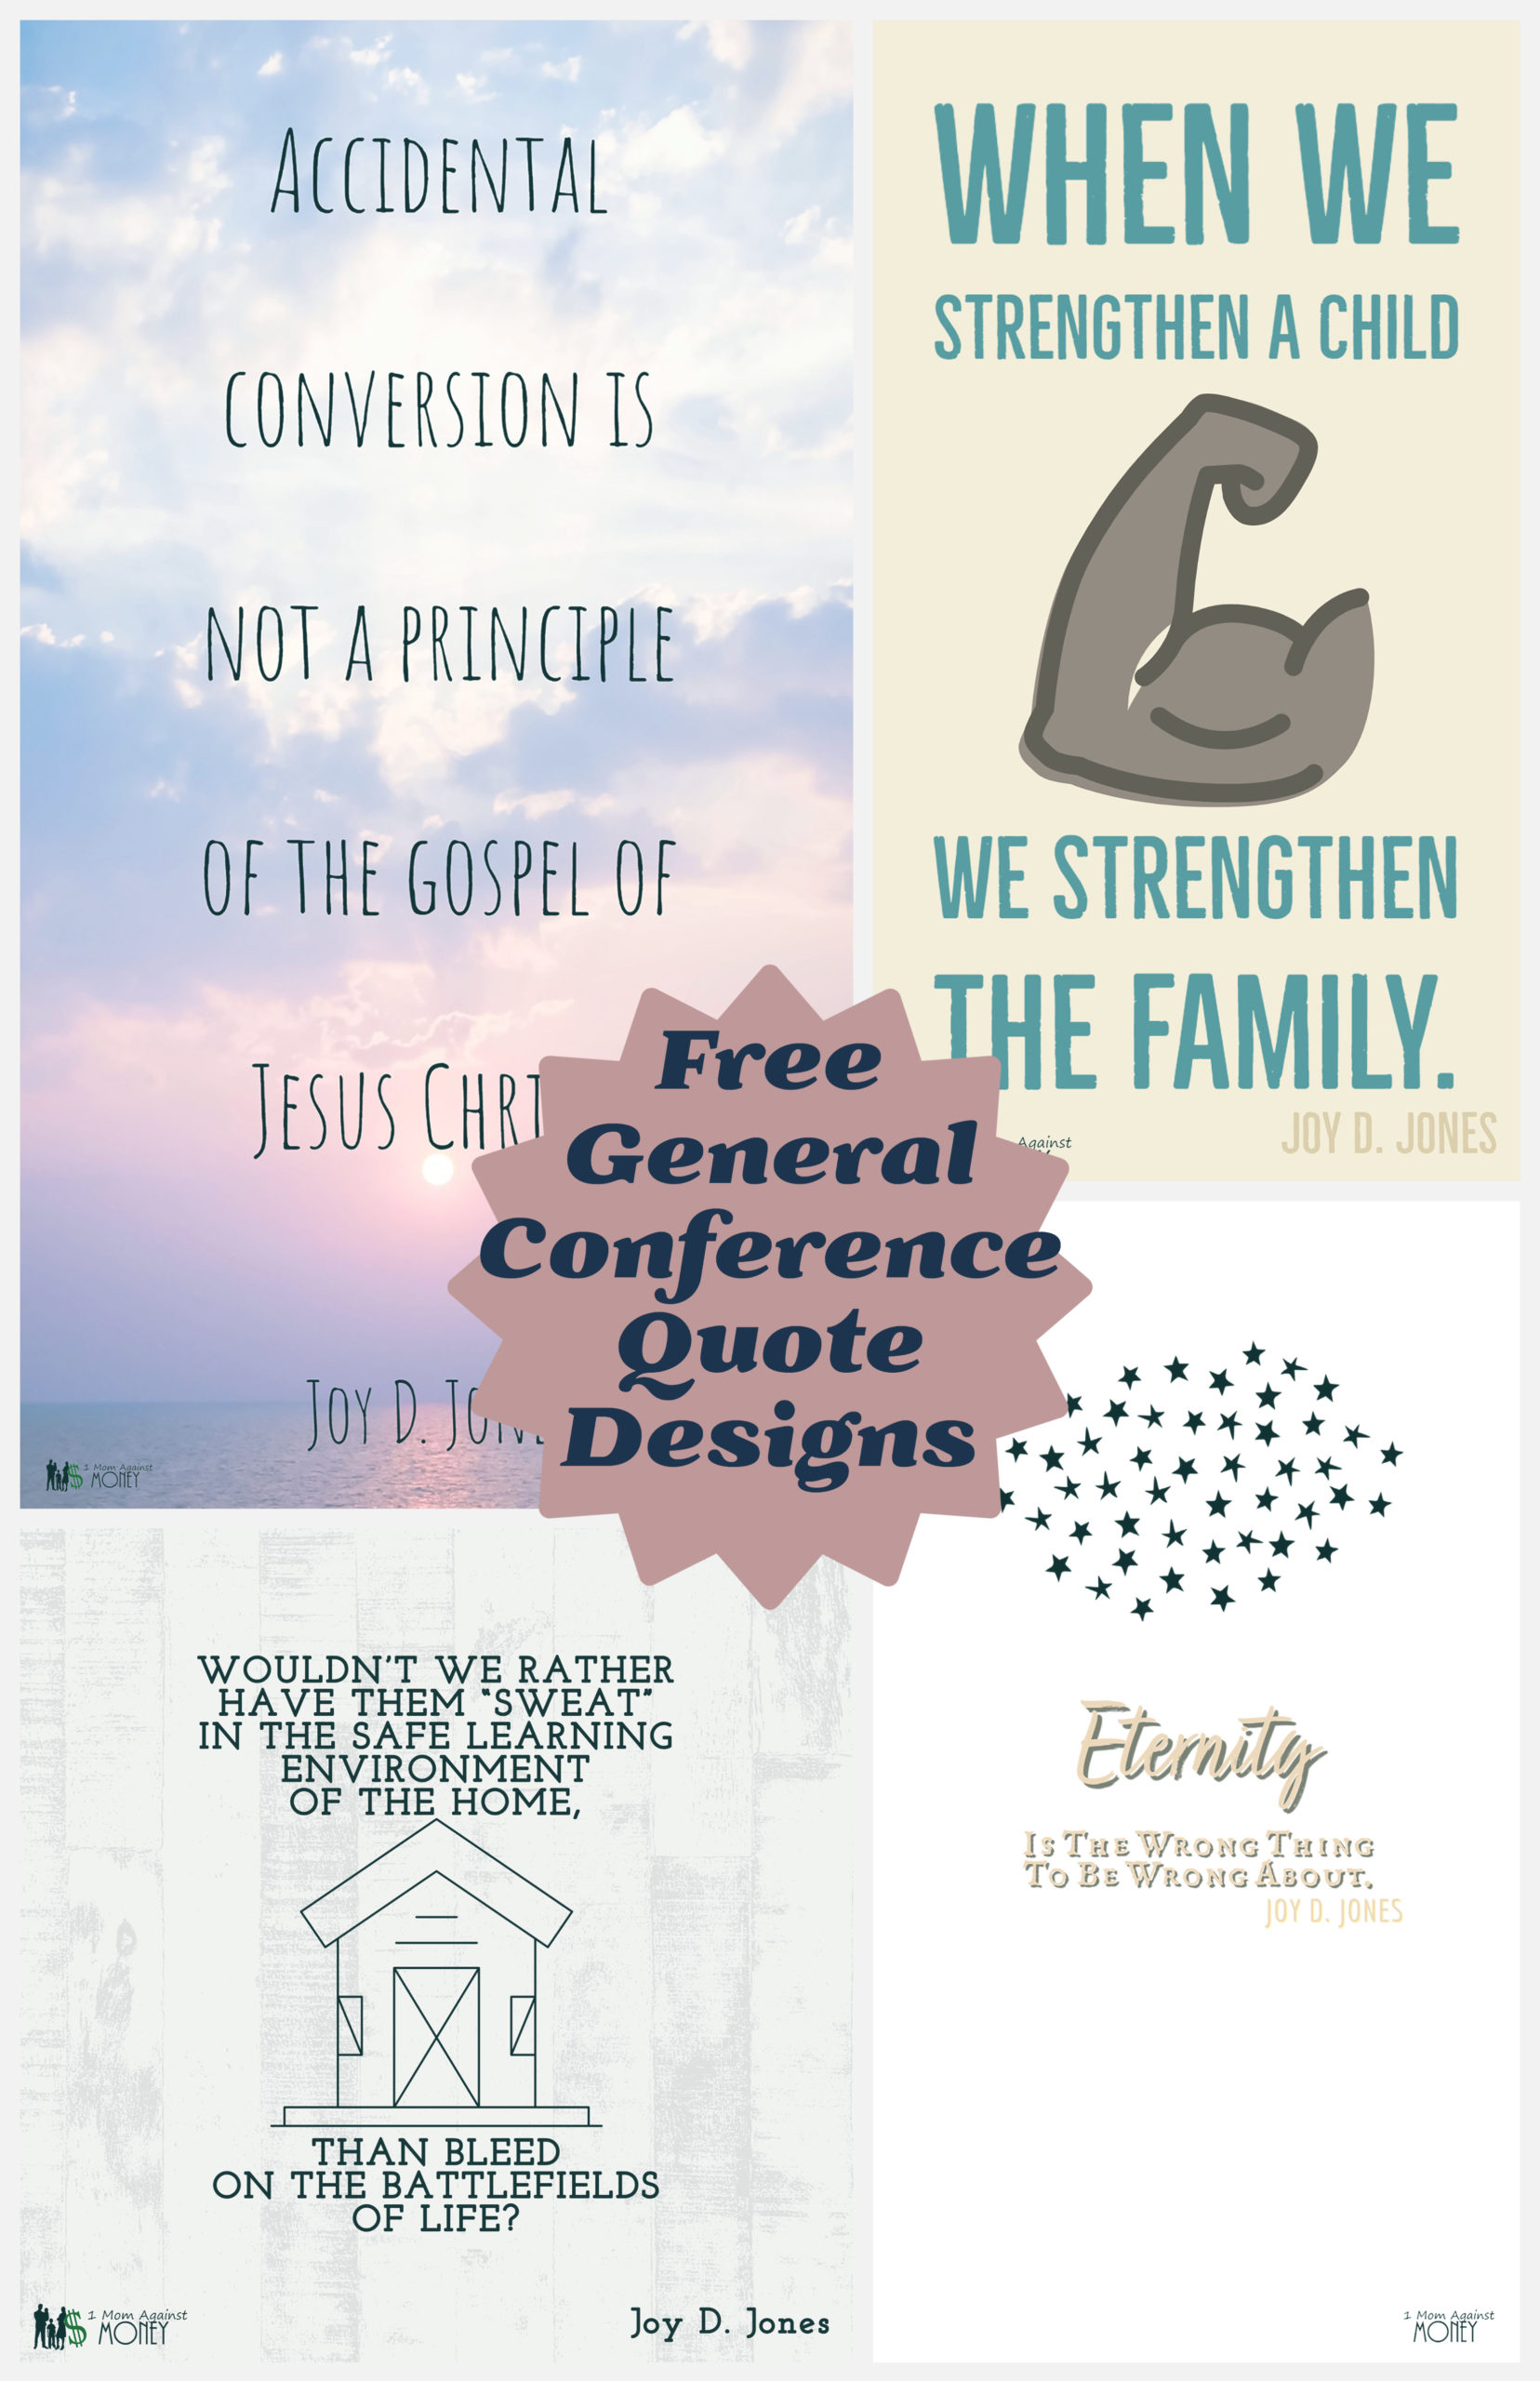 April 2021 General Conference Quotes from Joy D. Jones